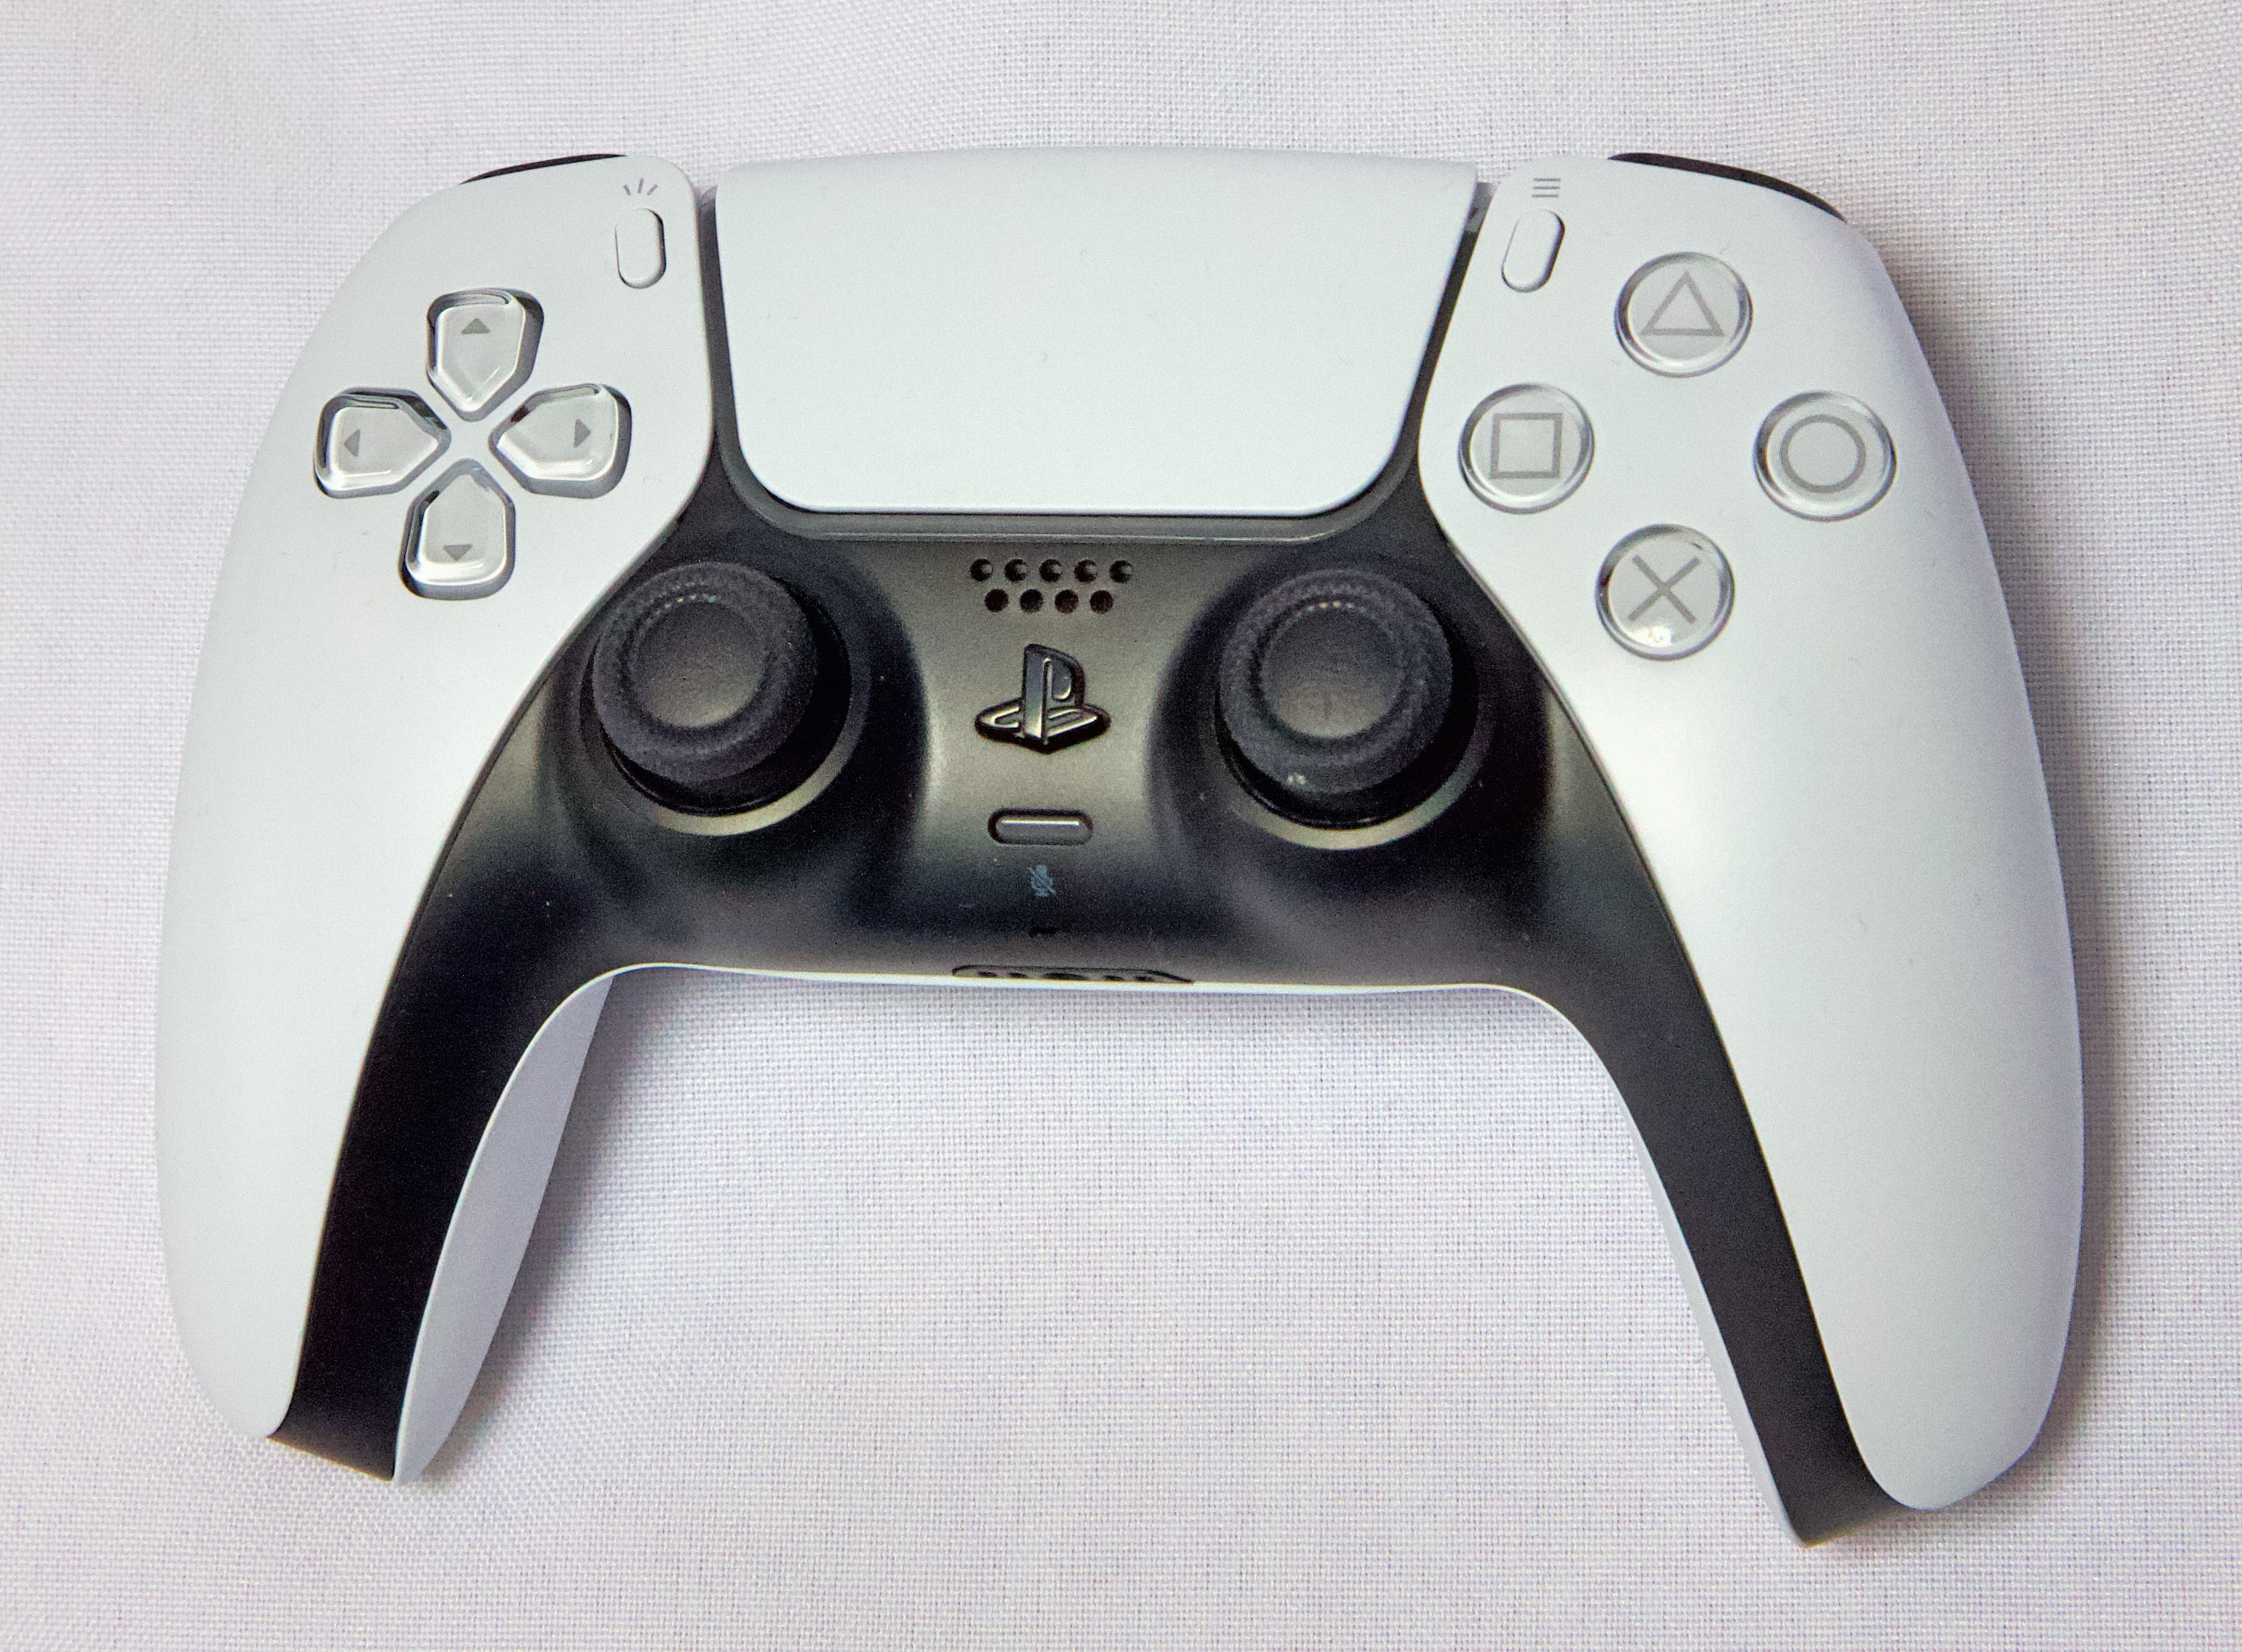 The DualSense controller for the PlayStation 5.